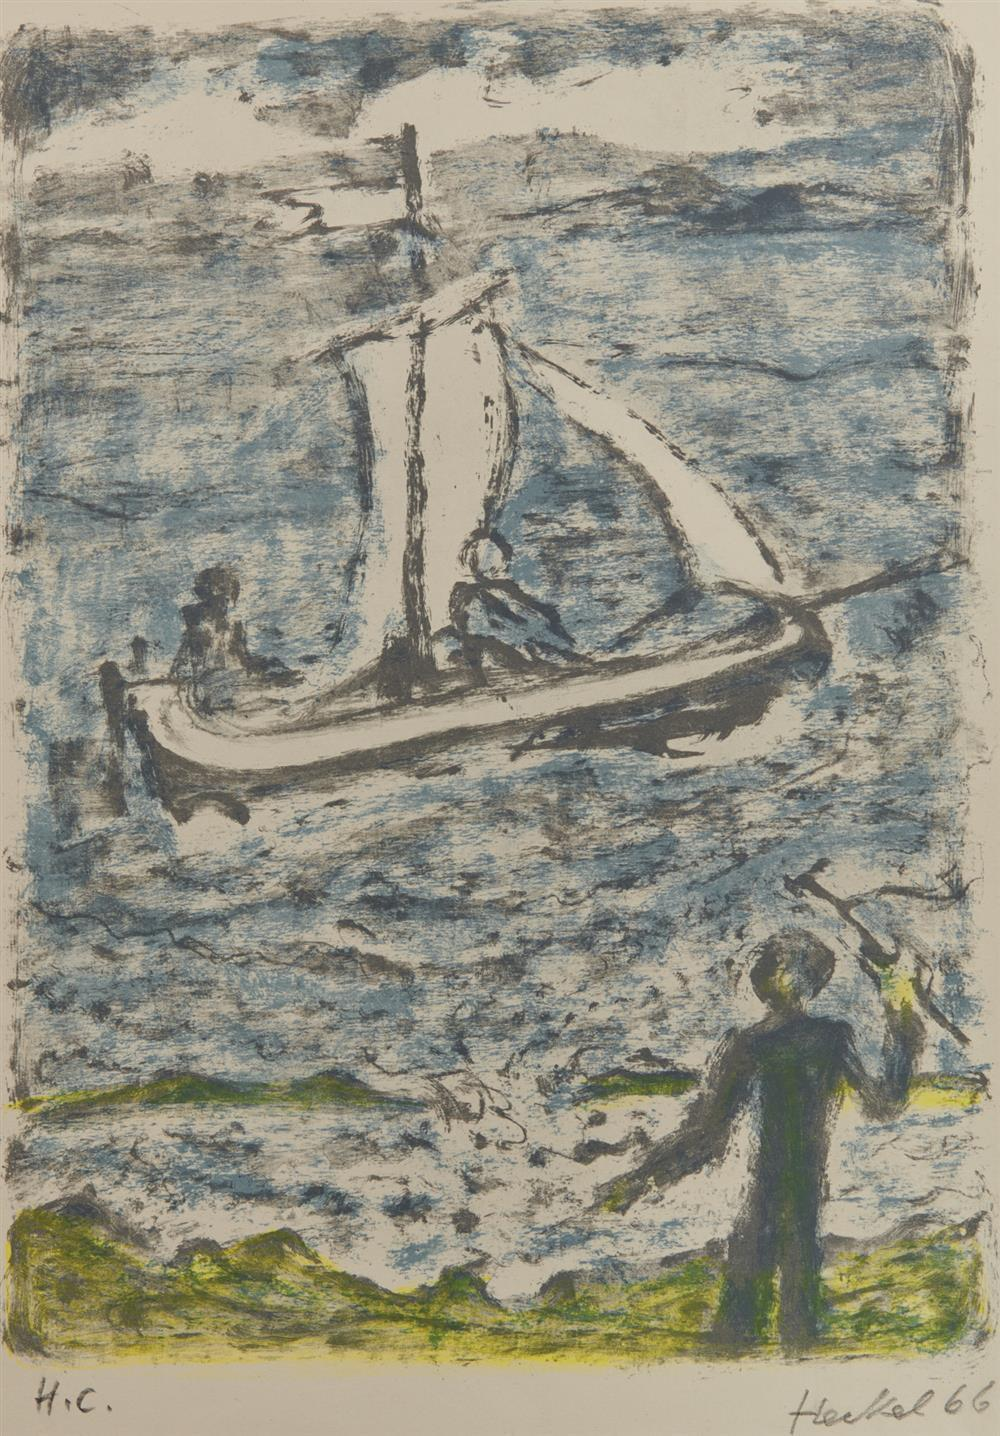 ERICH HECKEL, (German, 1883-1970), Segelschiff (Sailboat), 1966, lithograph in colors, 14 5/8 x 11 1/4 in.